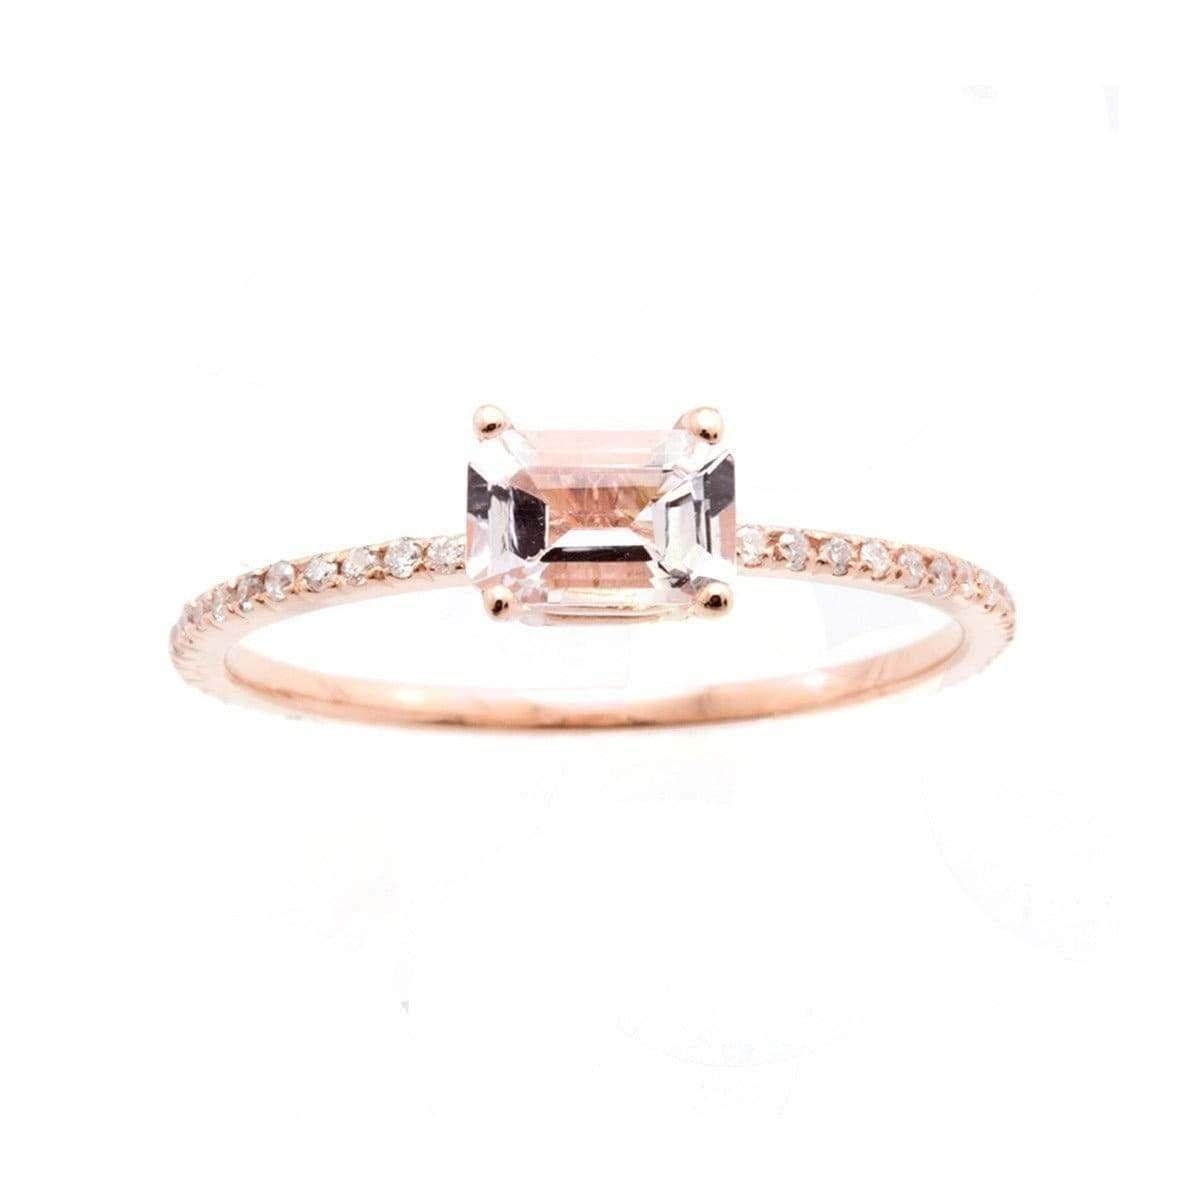 Emerald Cut Pink Morganite Ring